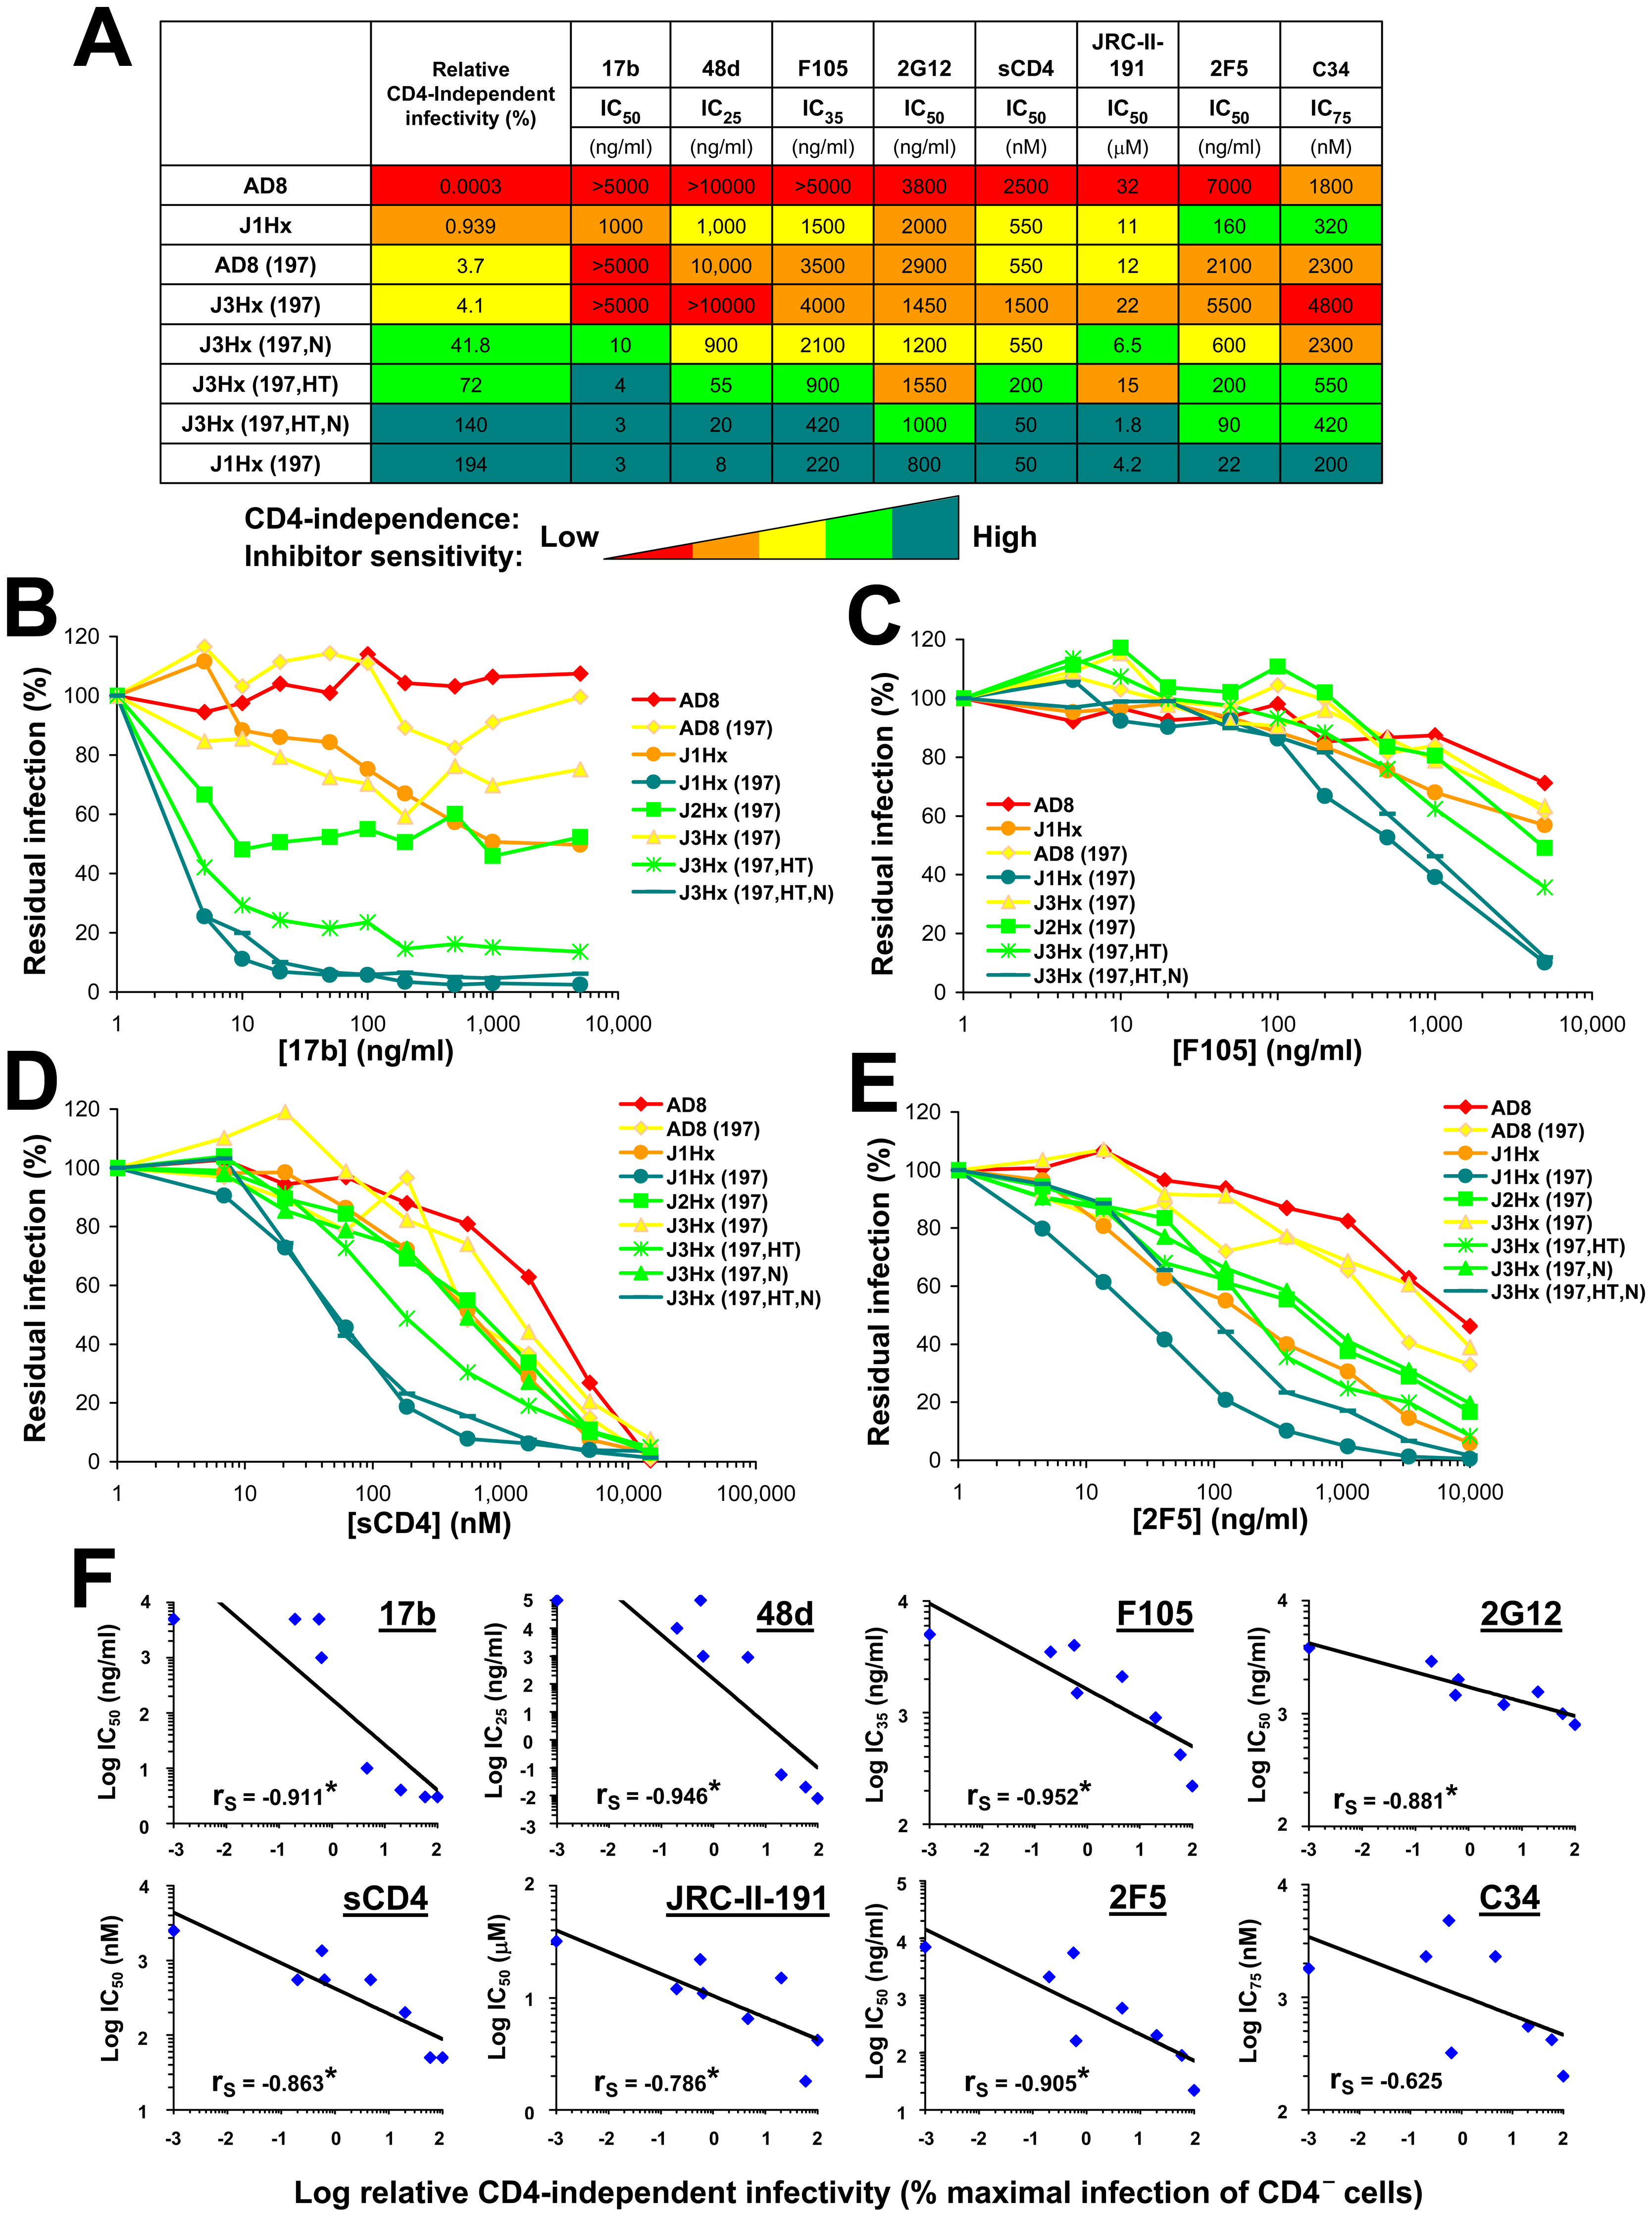 Association of CD4 independence and global neutralization sensitivity.